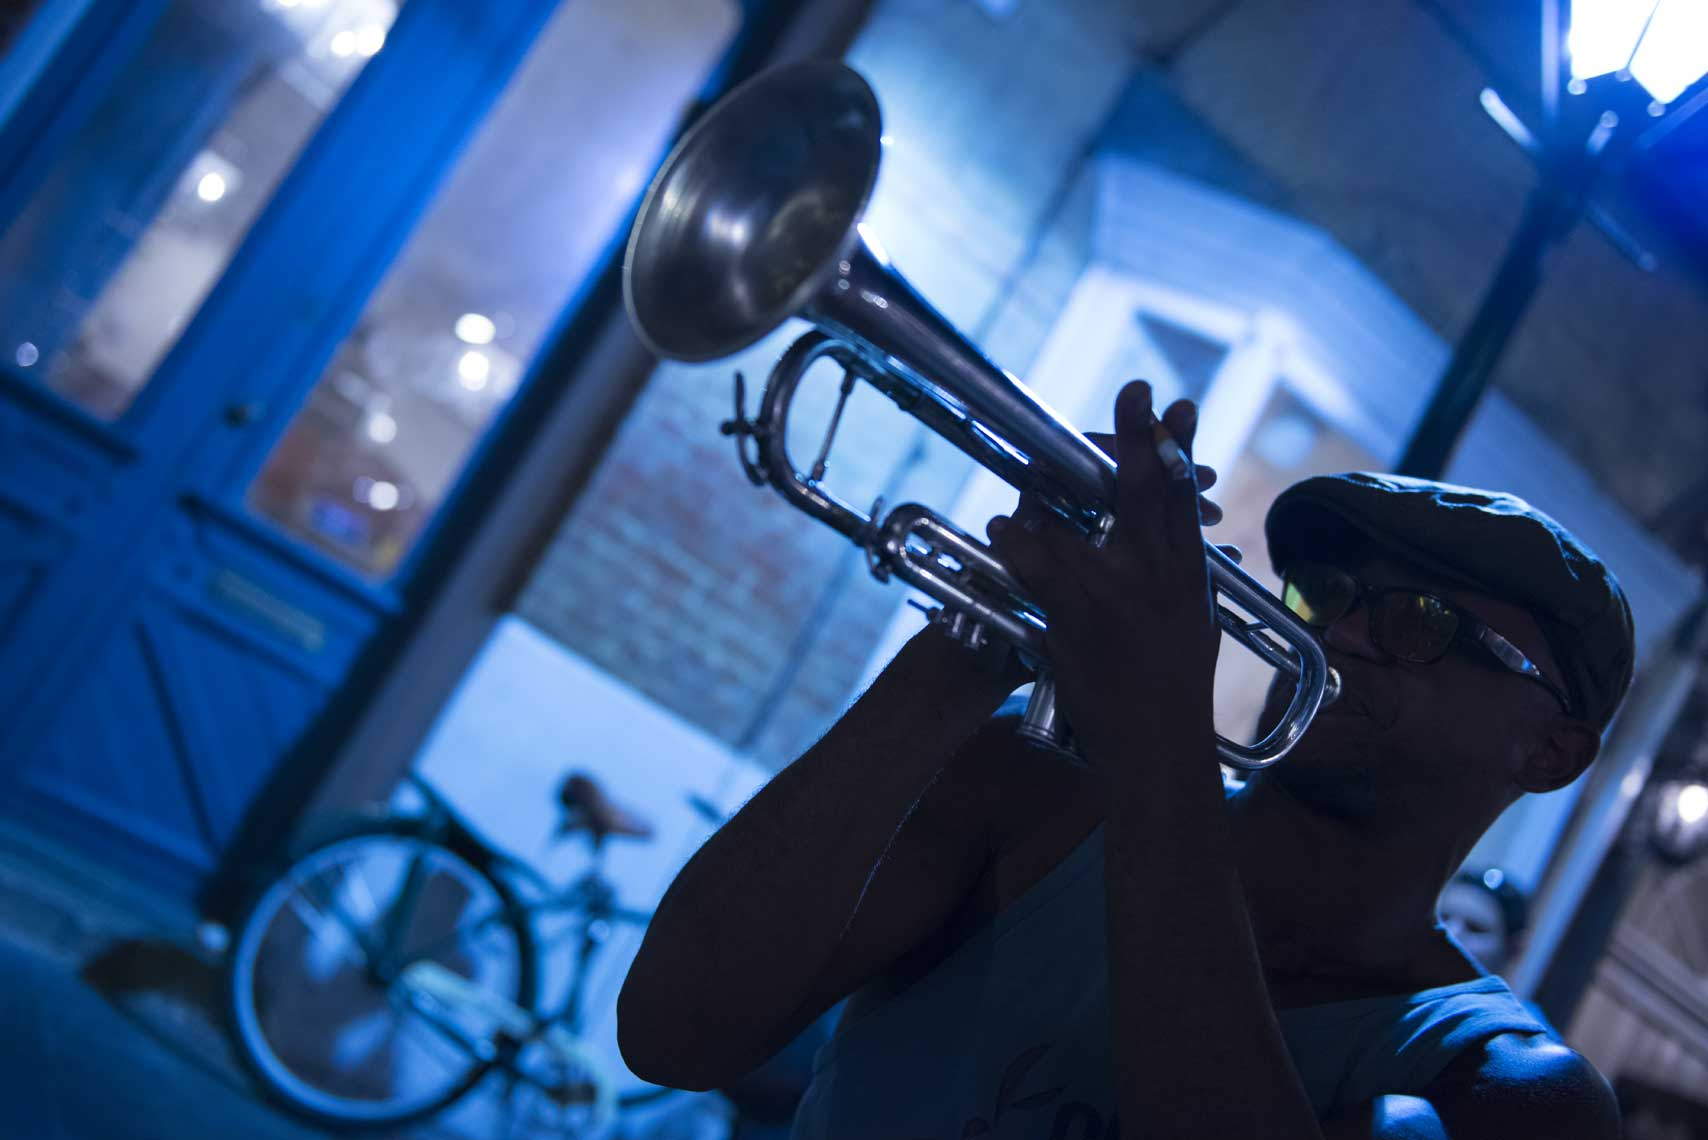 man-playing-the-trumpet-at-night-in-the-french-quarter